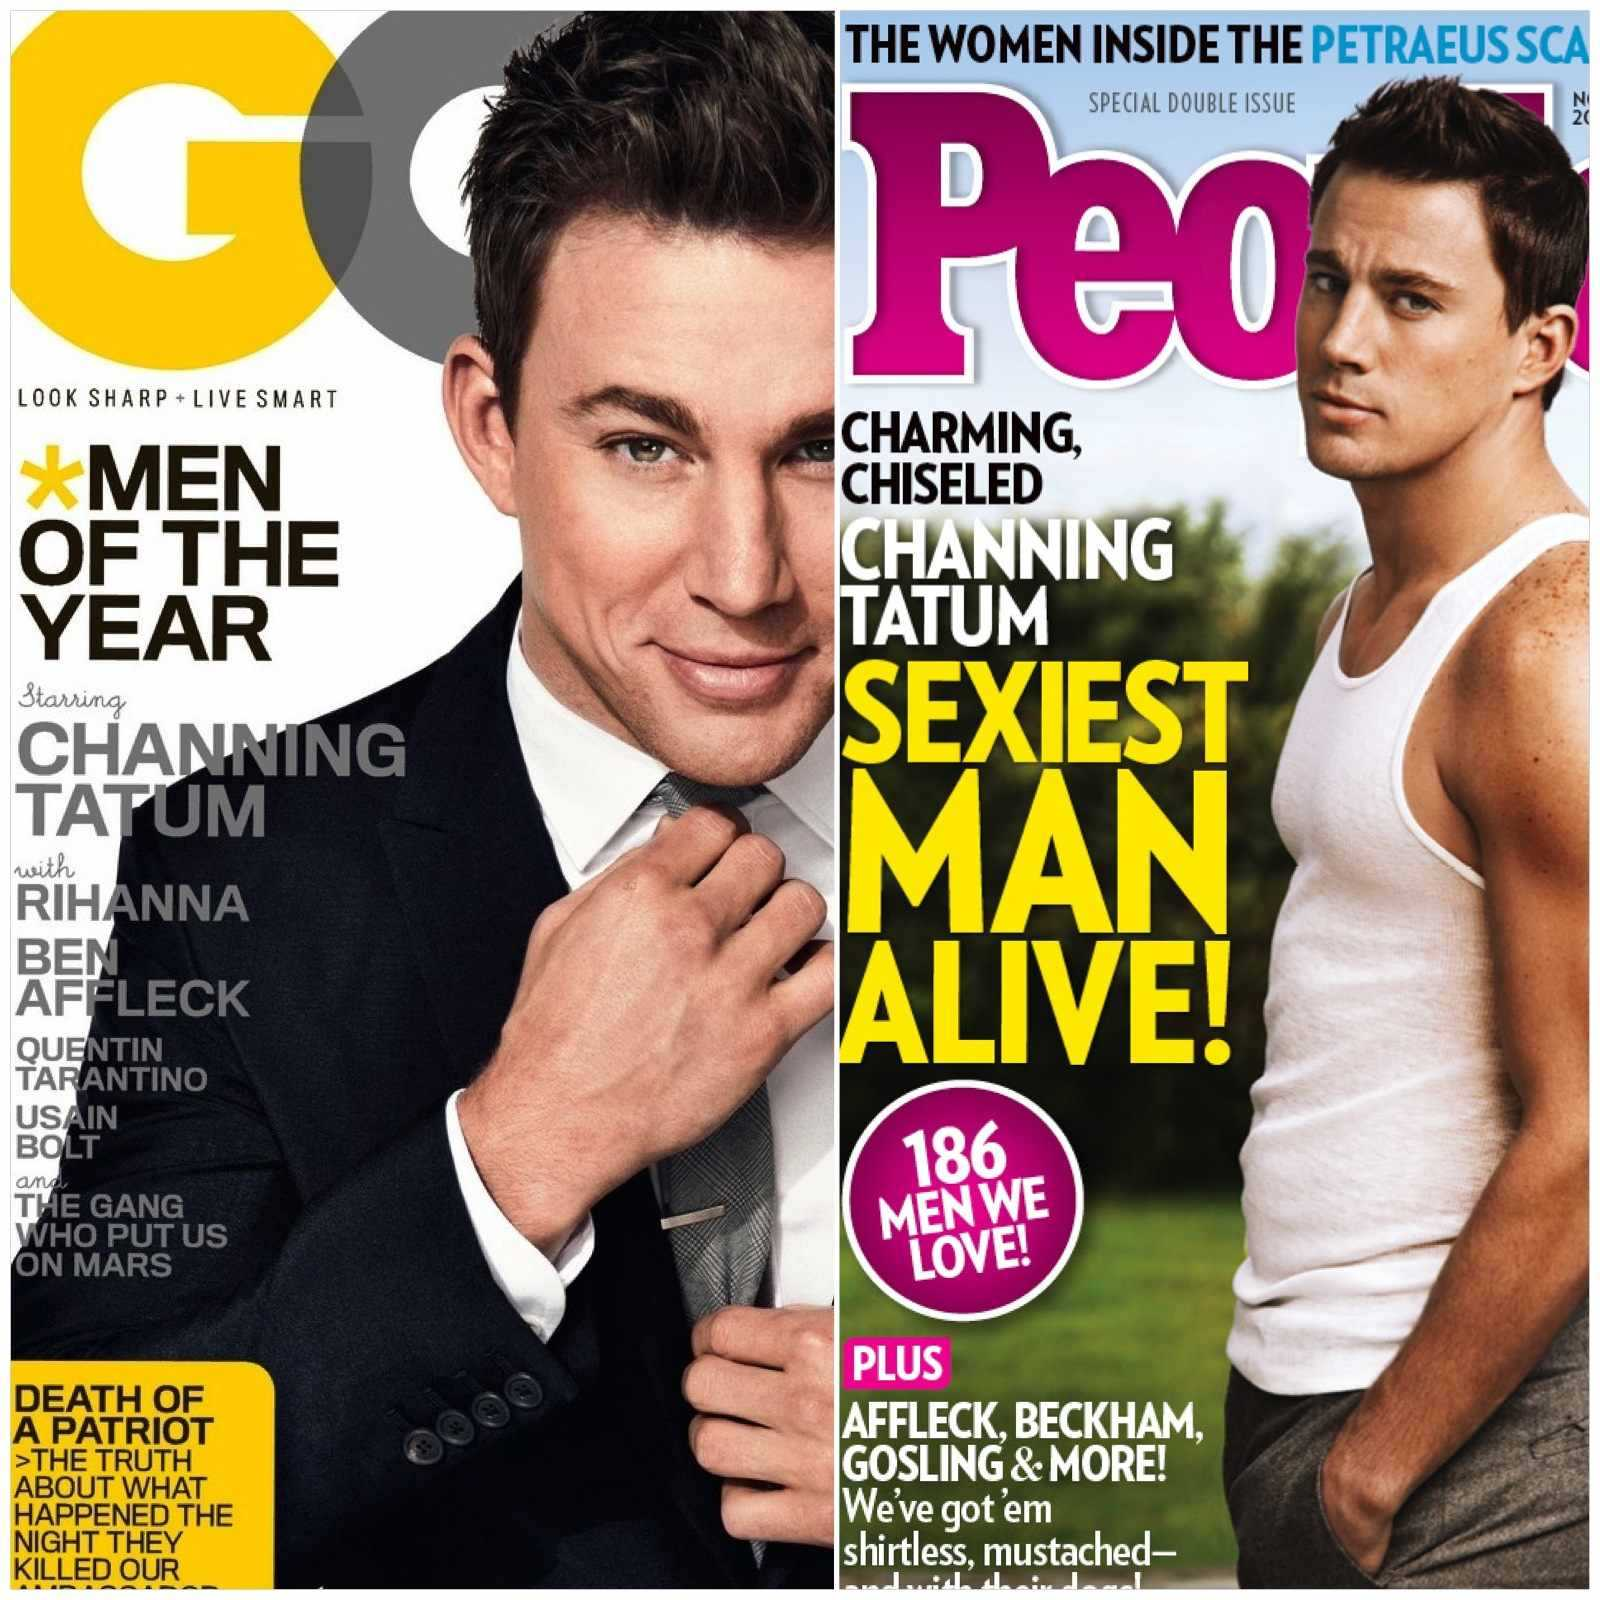 Channing Tatum Dubbed GQ's Man of the Year & People Magazine's Sexiest Man Alive!!!